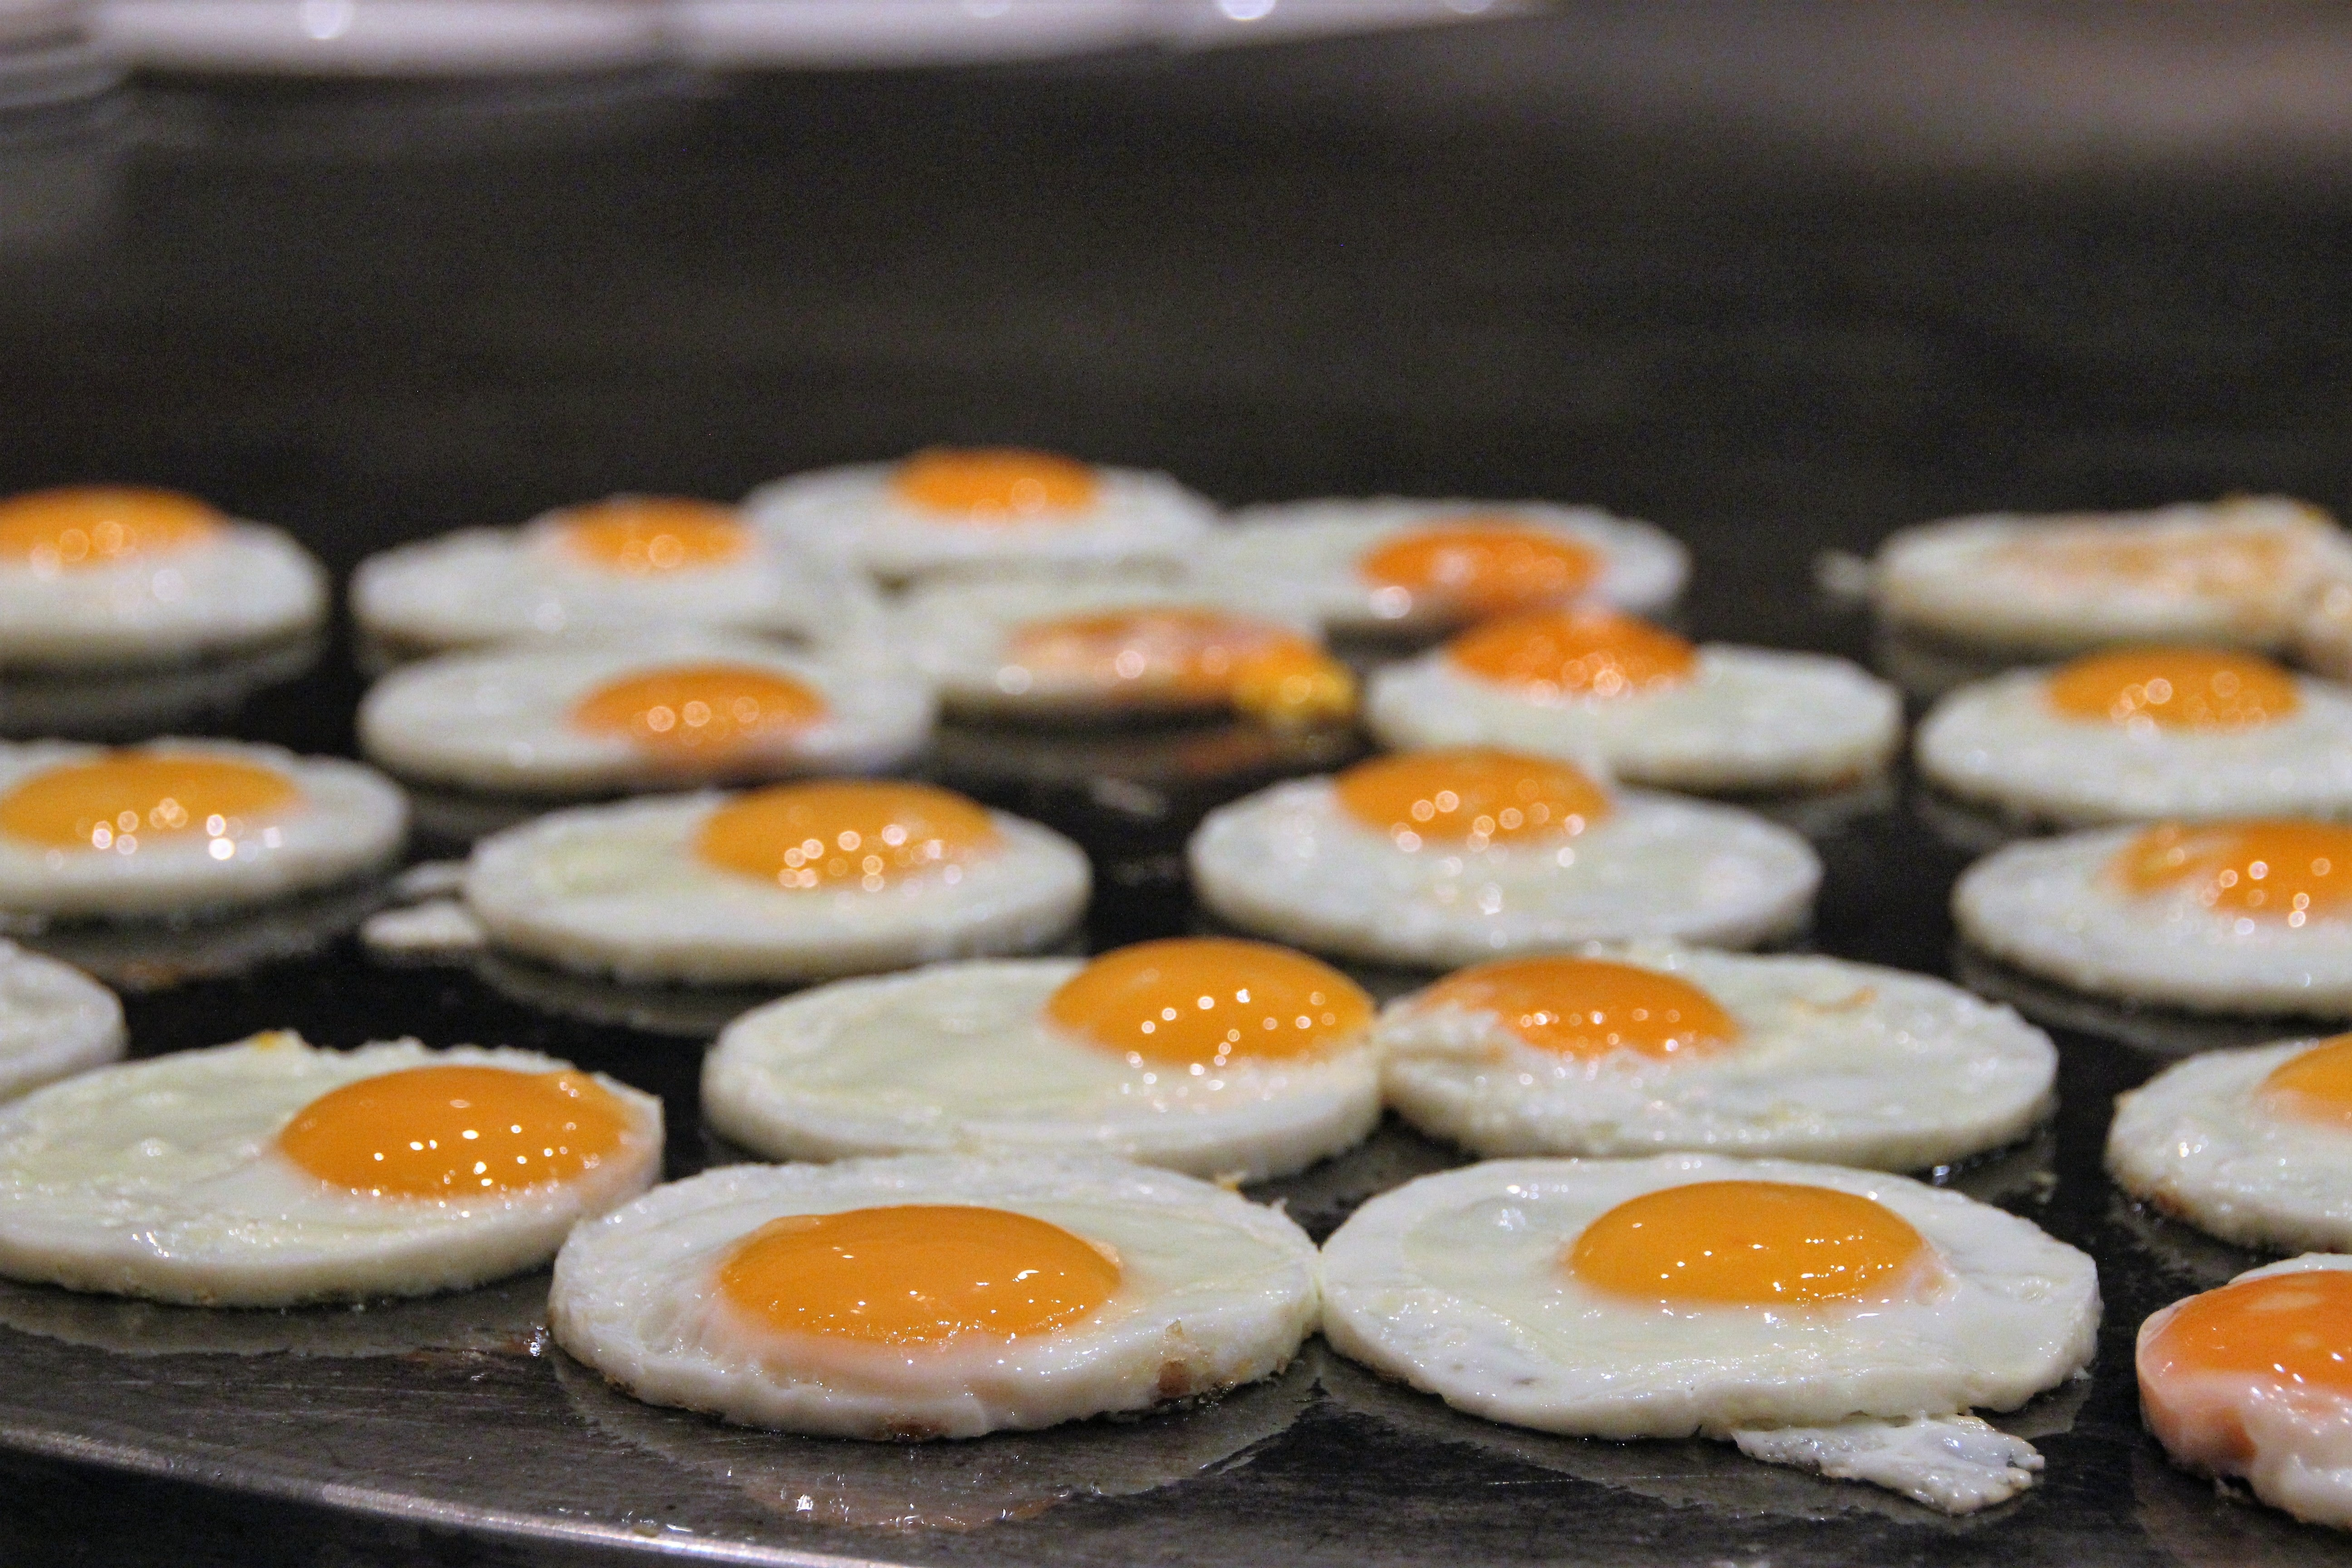 Sunny Side Up Eggs On Griddle 183 Free Stock Photo